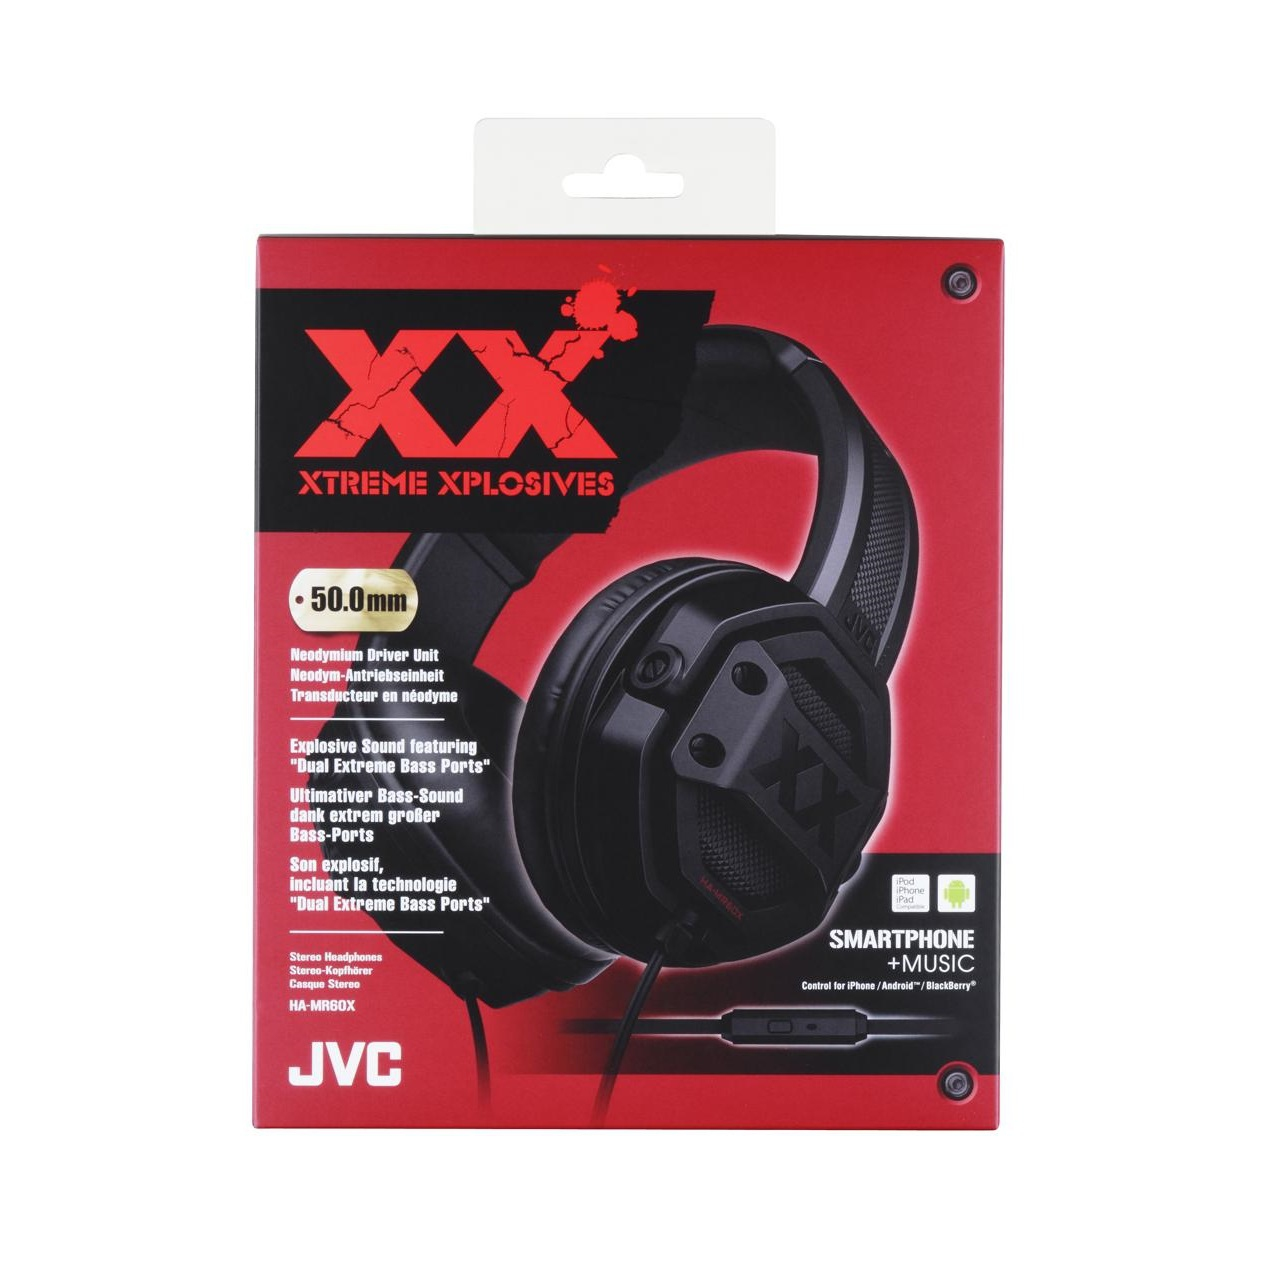 JVC HA-MR60X XTREME XPLOSIVES Over-Ear Headphones ultimate Bass Sound with  Mic